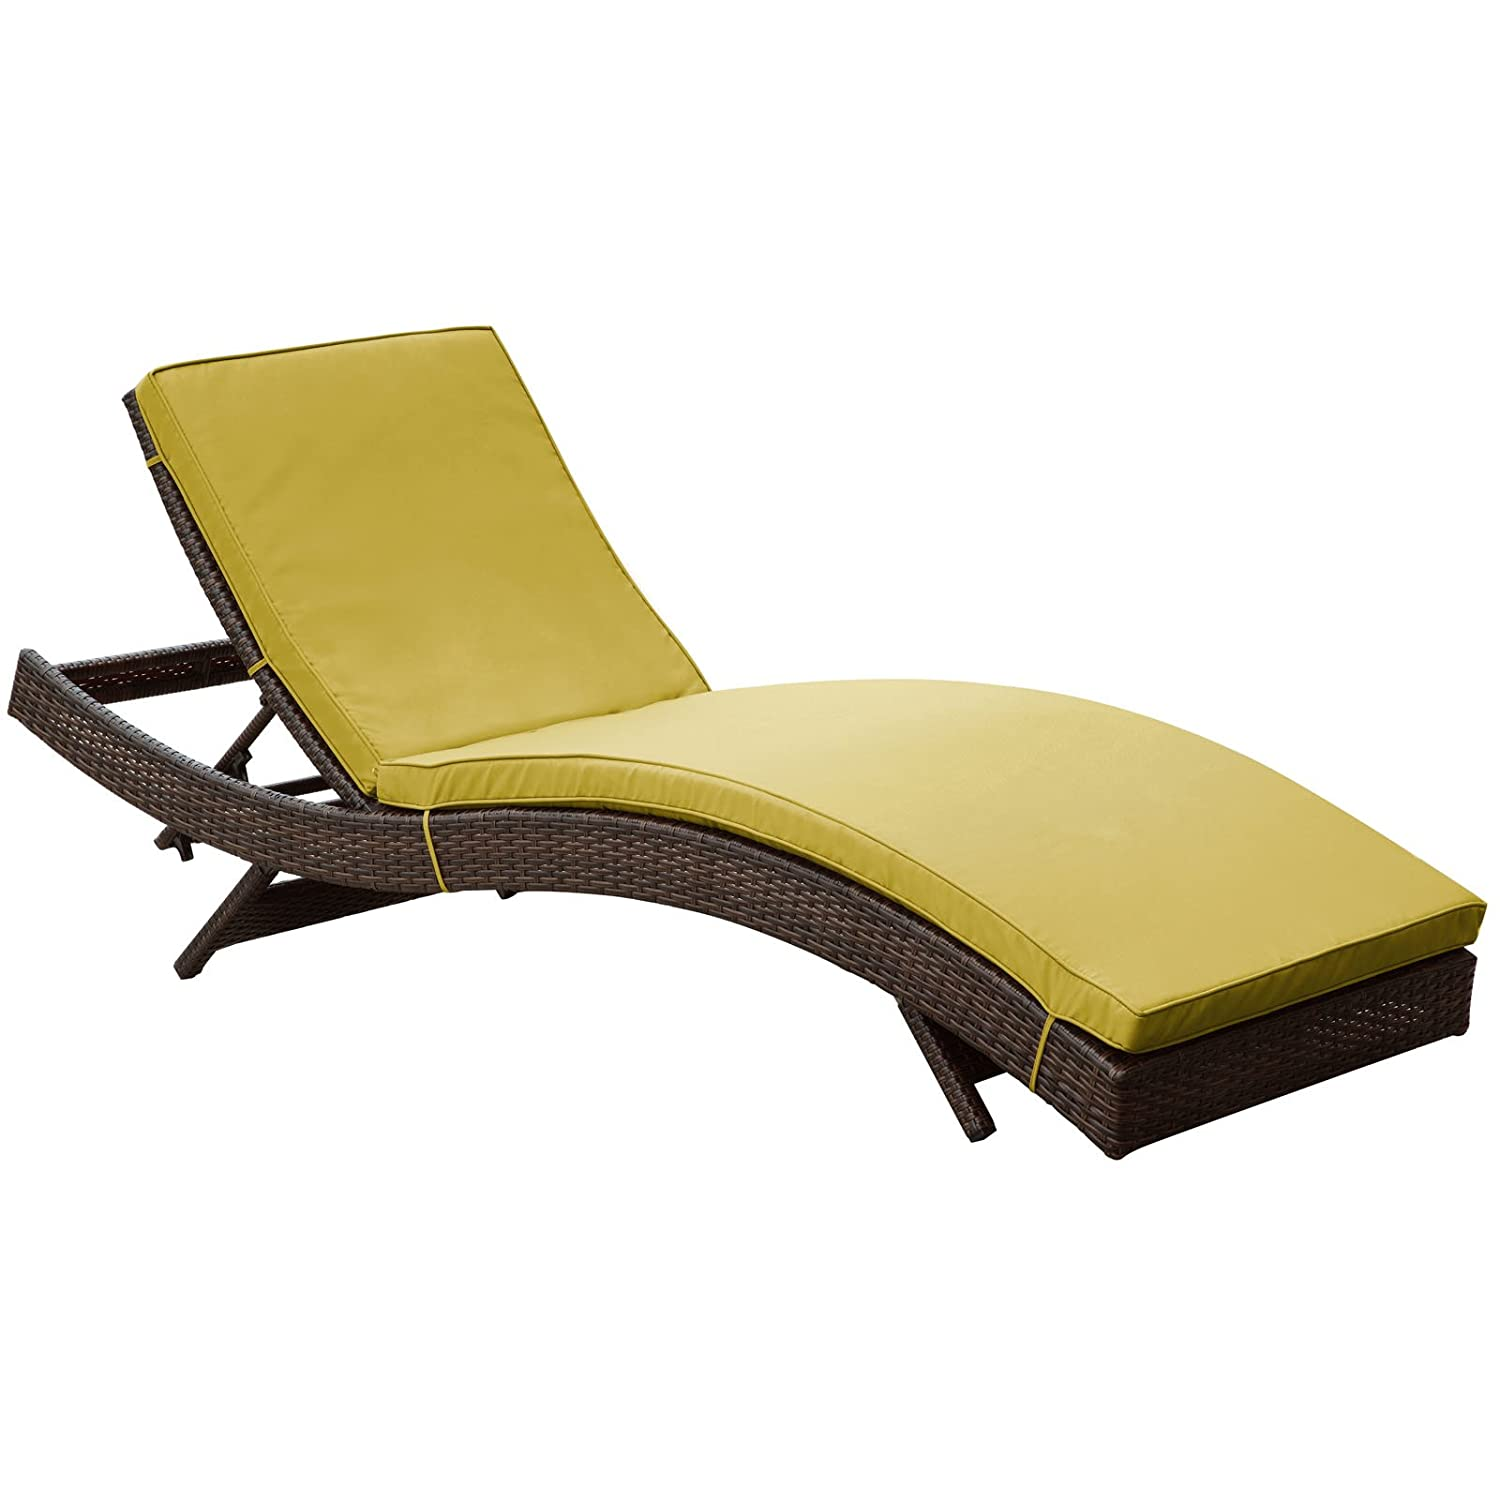 cushion chaise jamaica free garden shipping with knight home outdoor christopher product overstock today lounge of by set